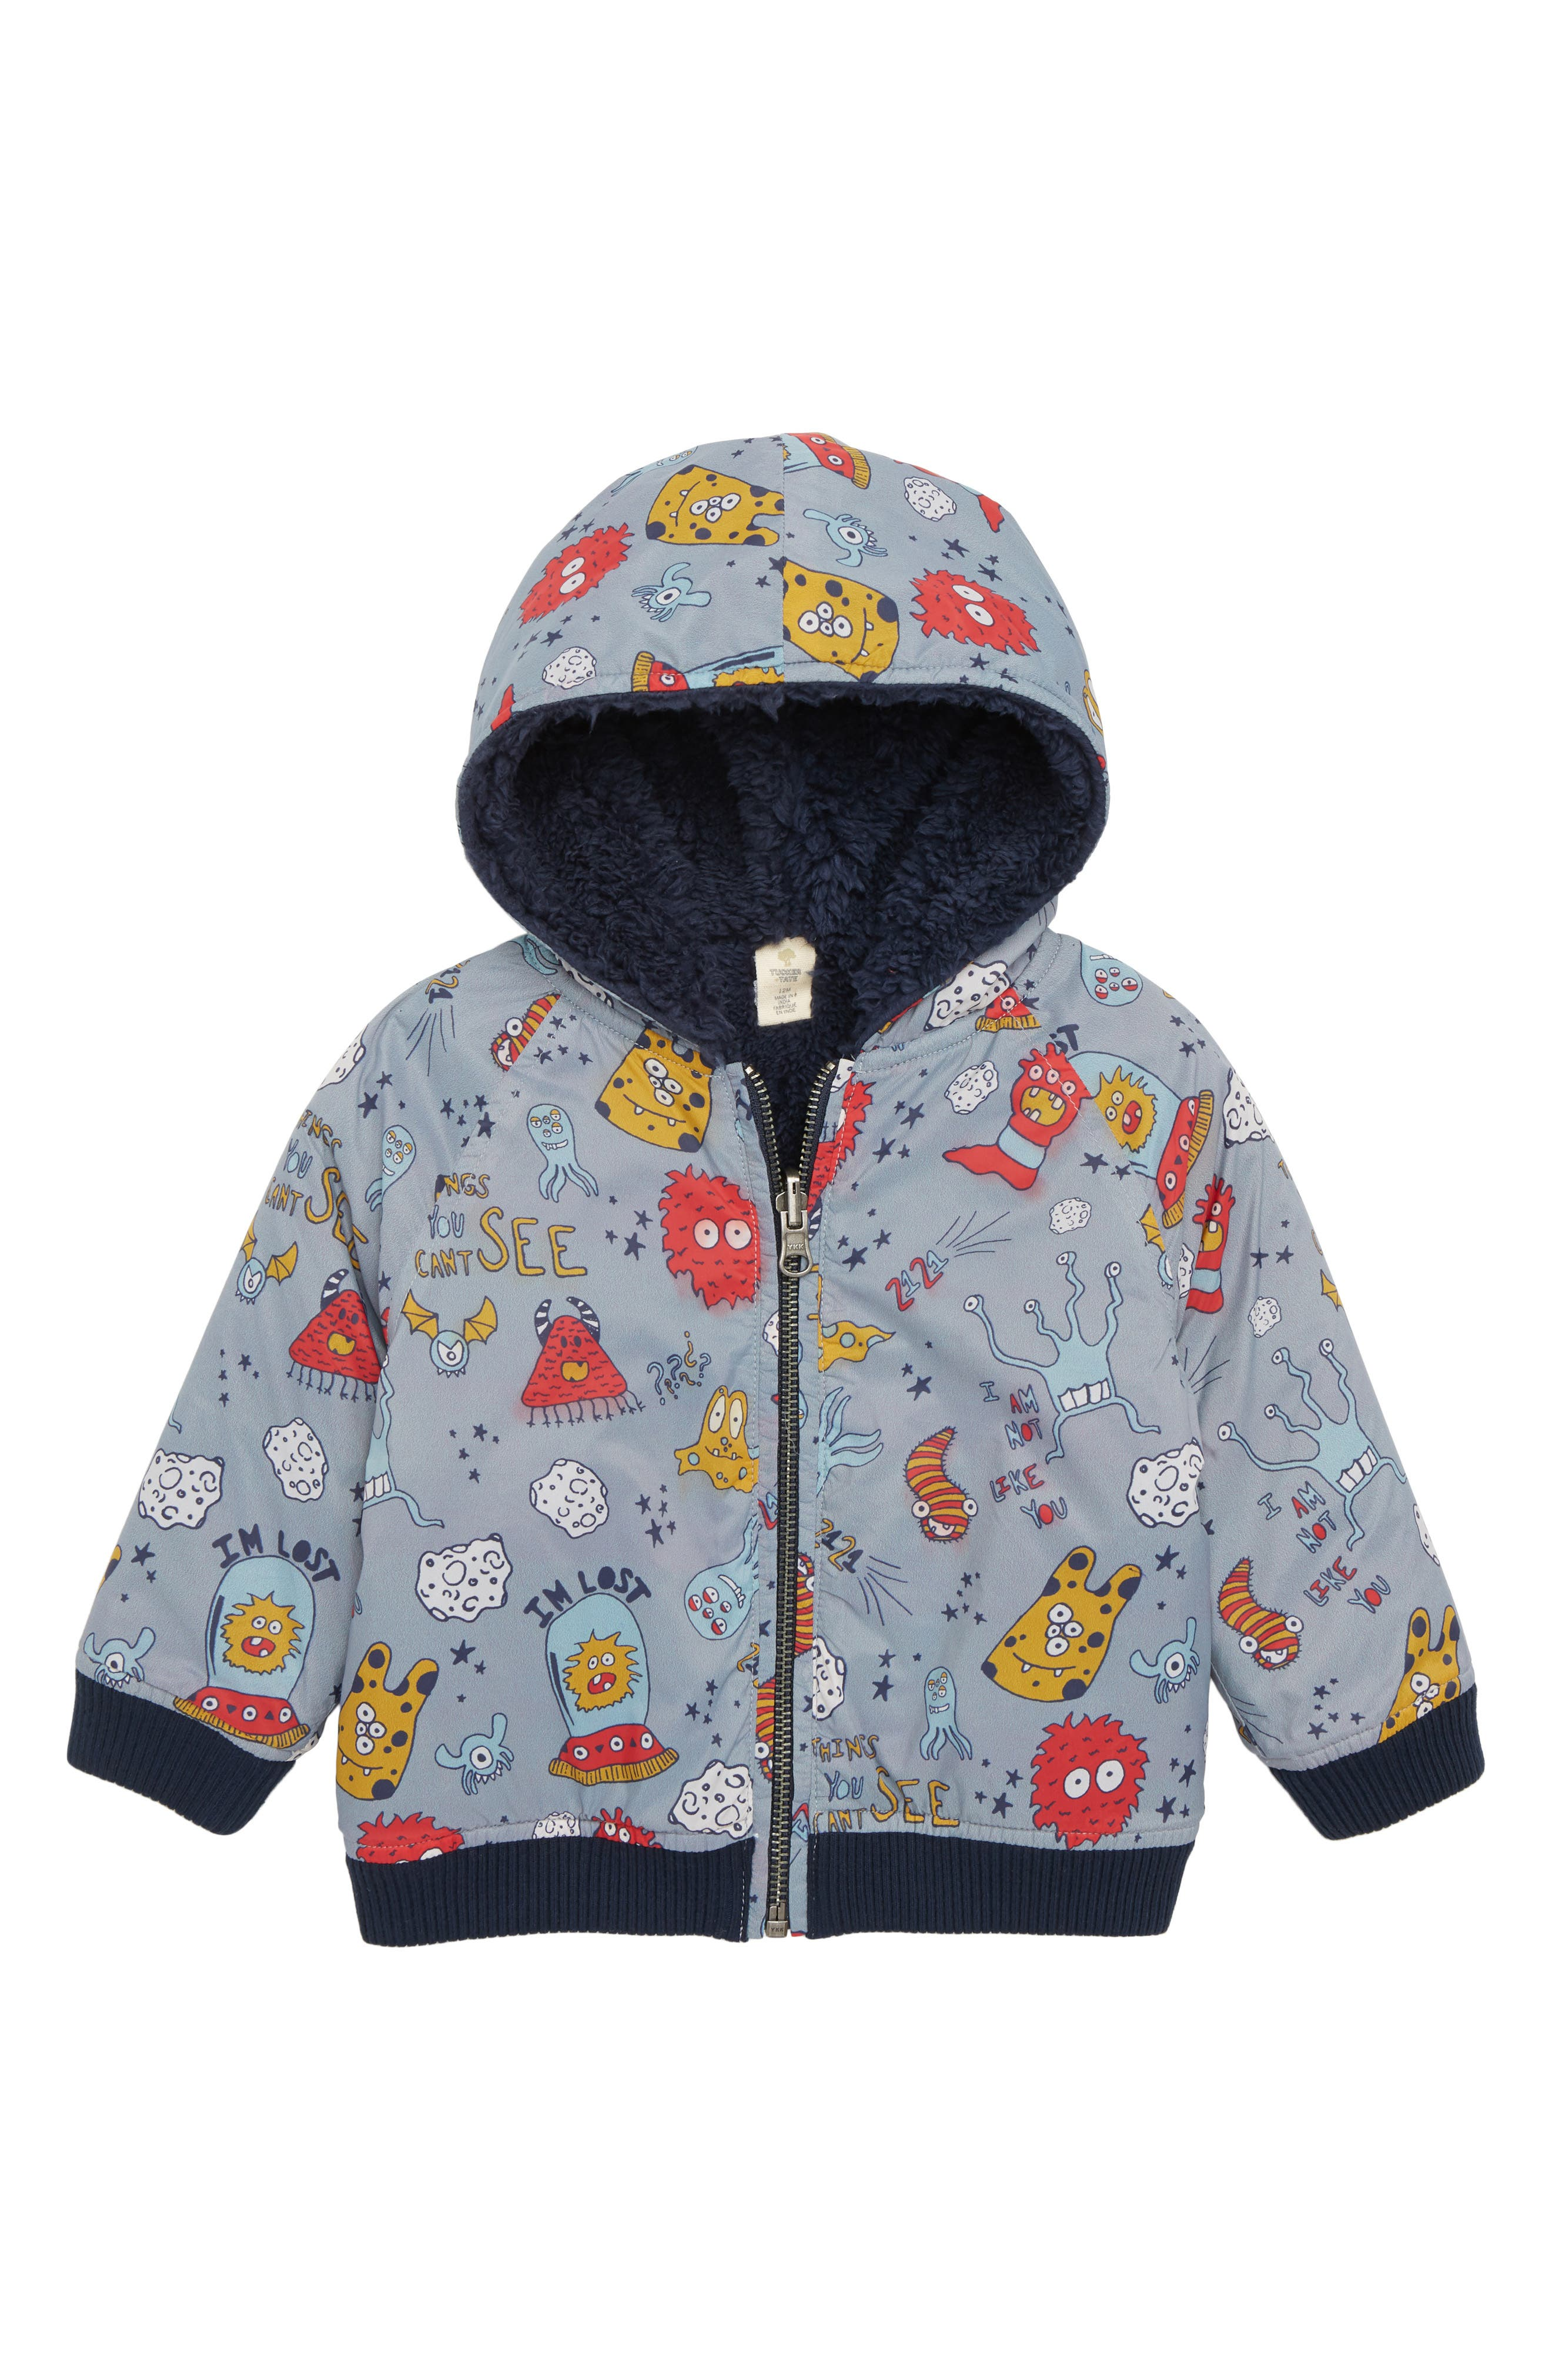 TUCKER + TATE Reversible Hooded Jacket, Main, color, 050